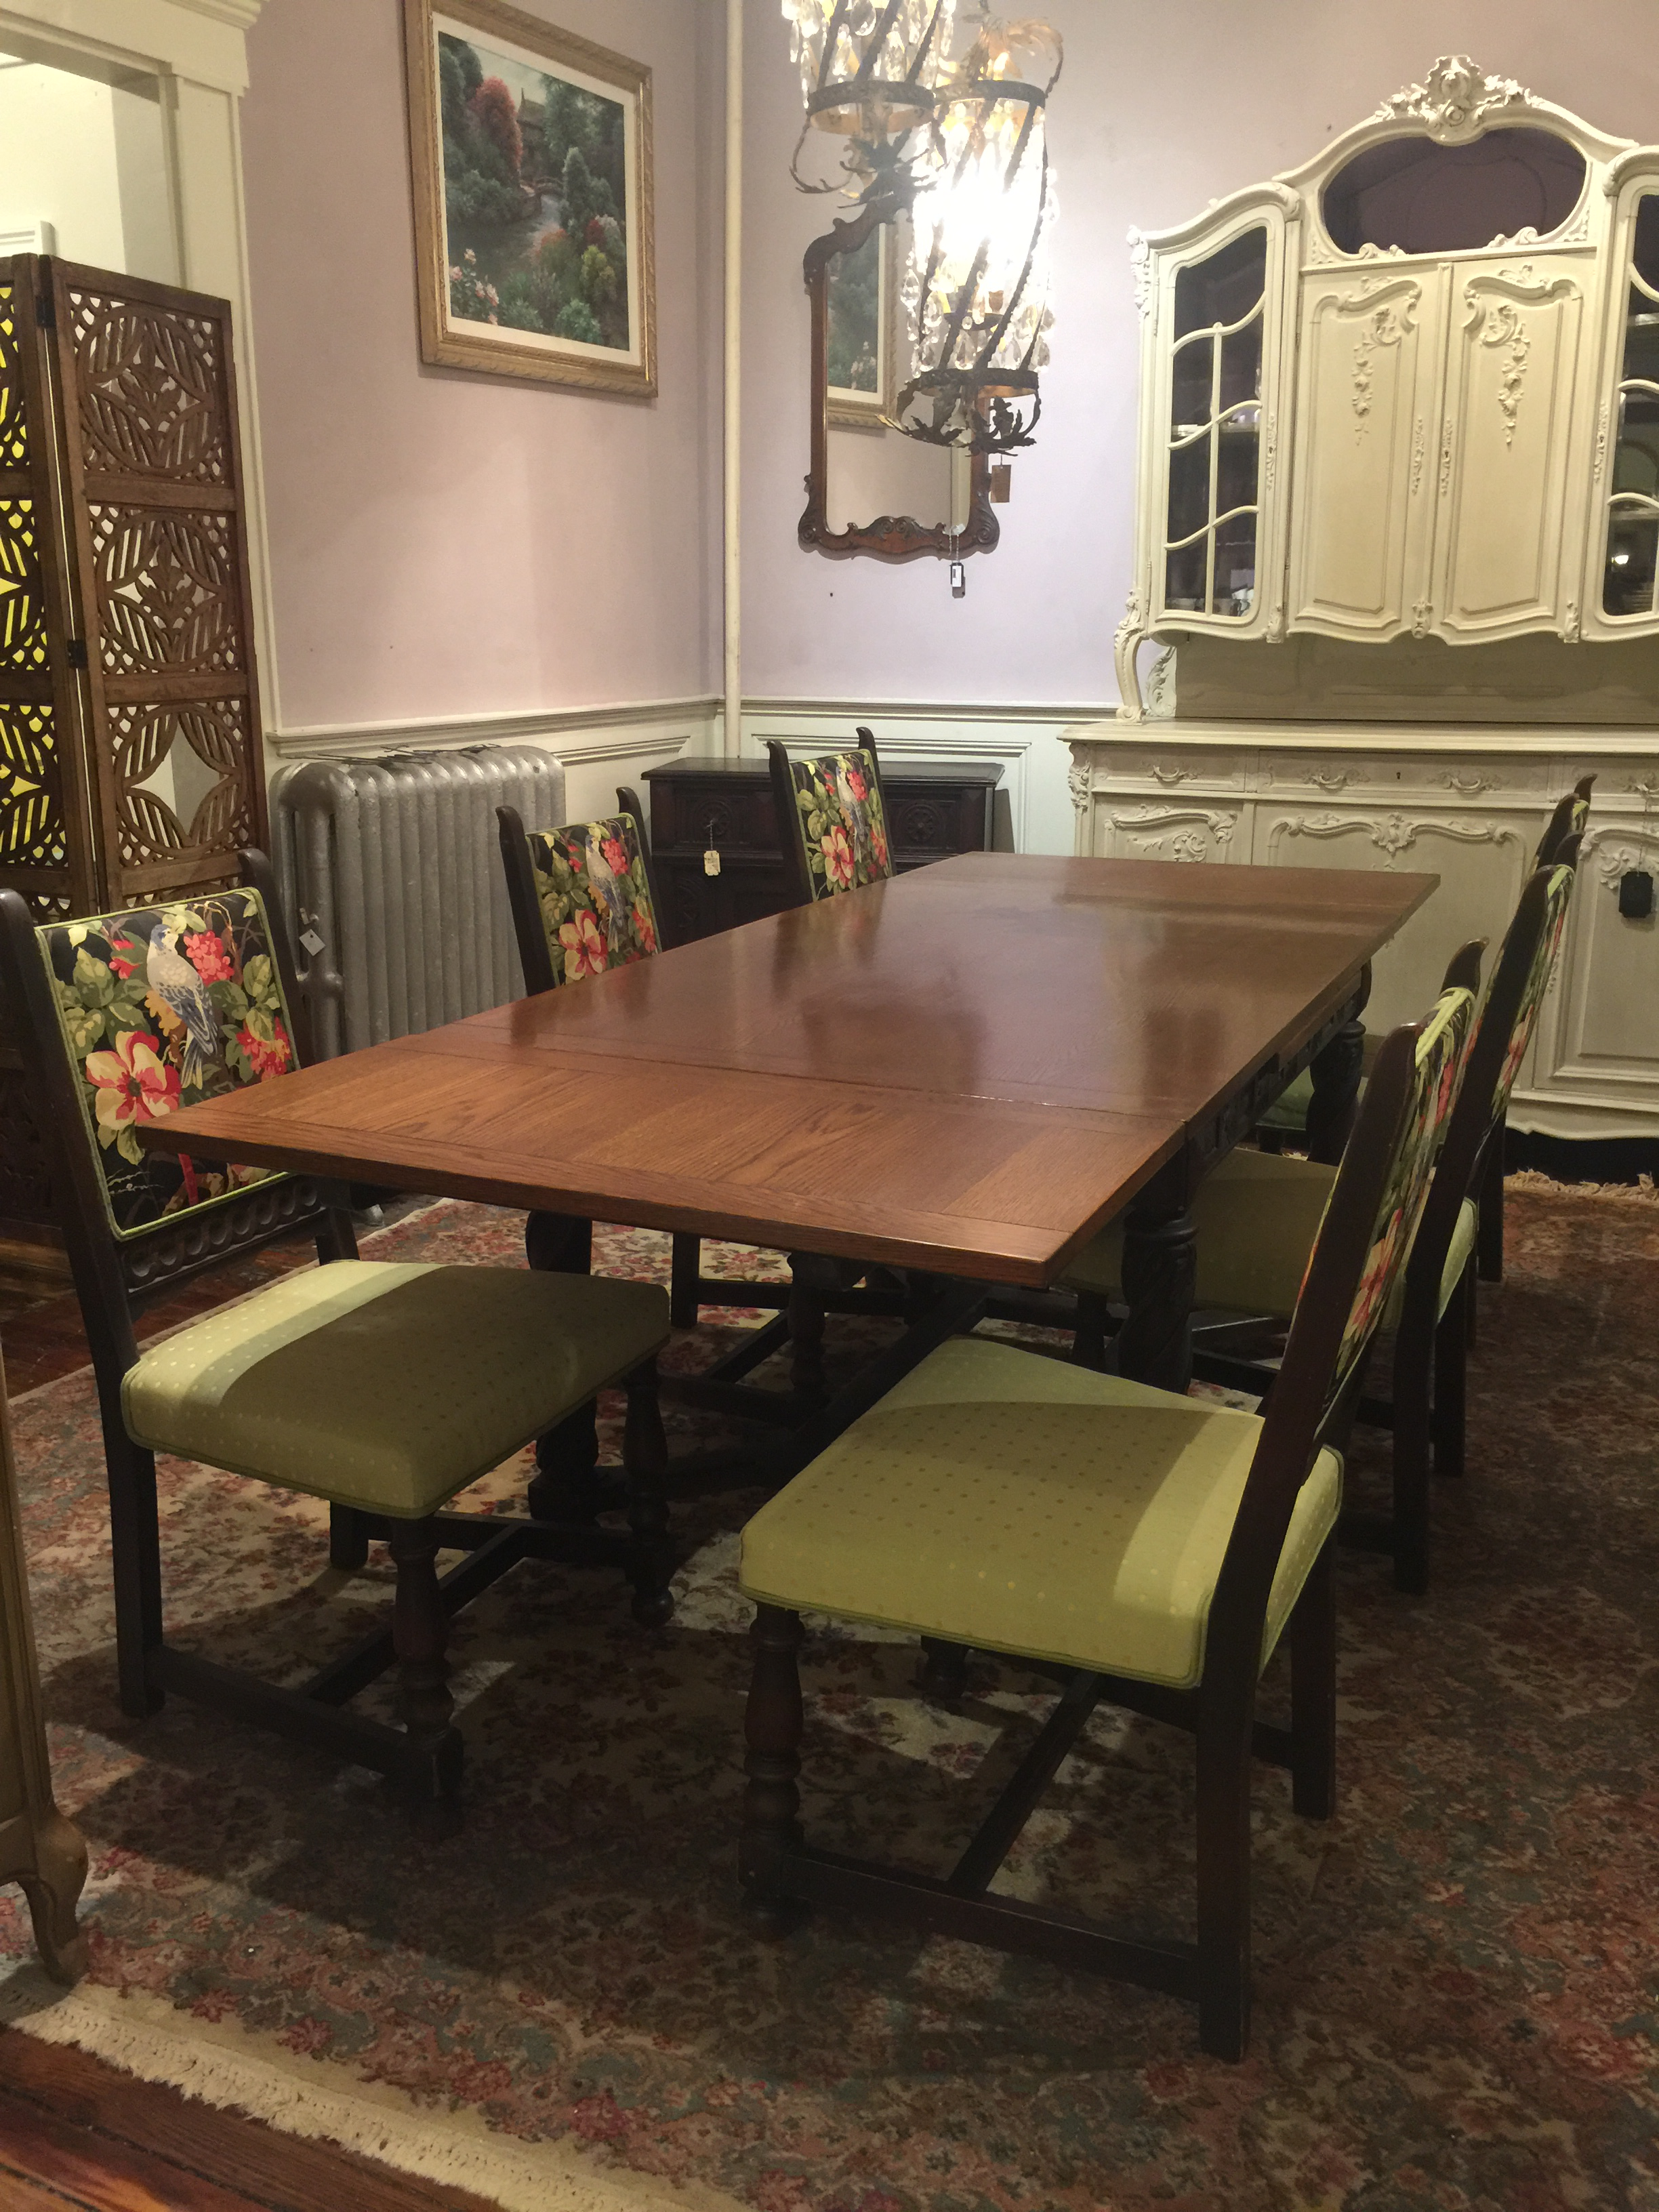 Incroyable This Is An Antique Jacobean Refectory Dining Table With Expandable Leaves.  The Table Without The